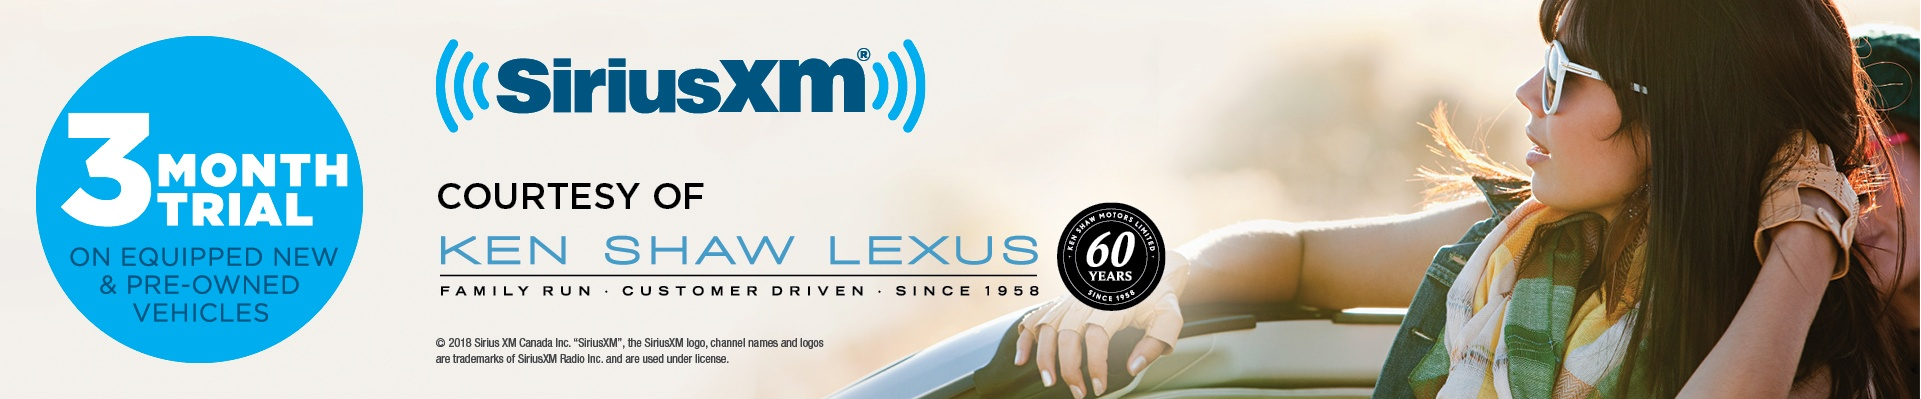 SiriusXM 3 Month Trial